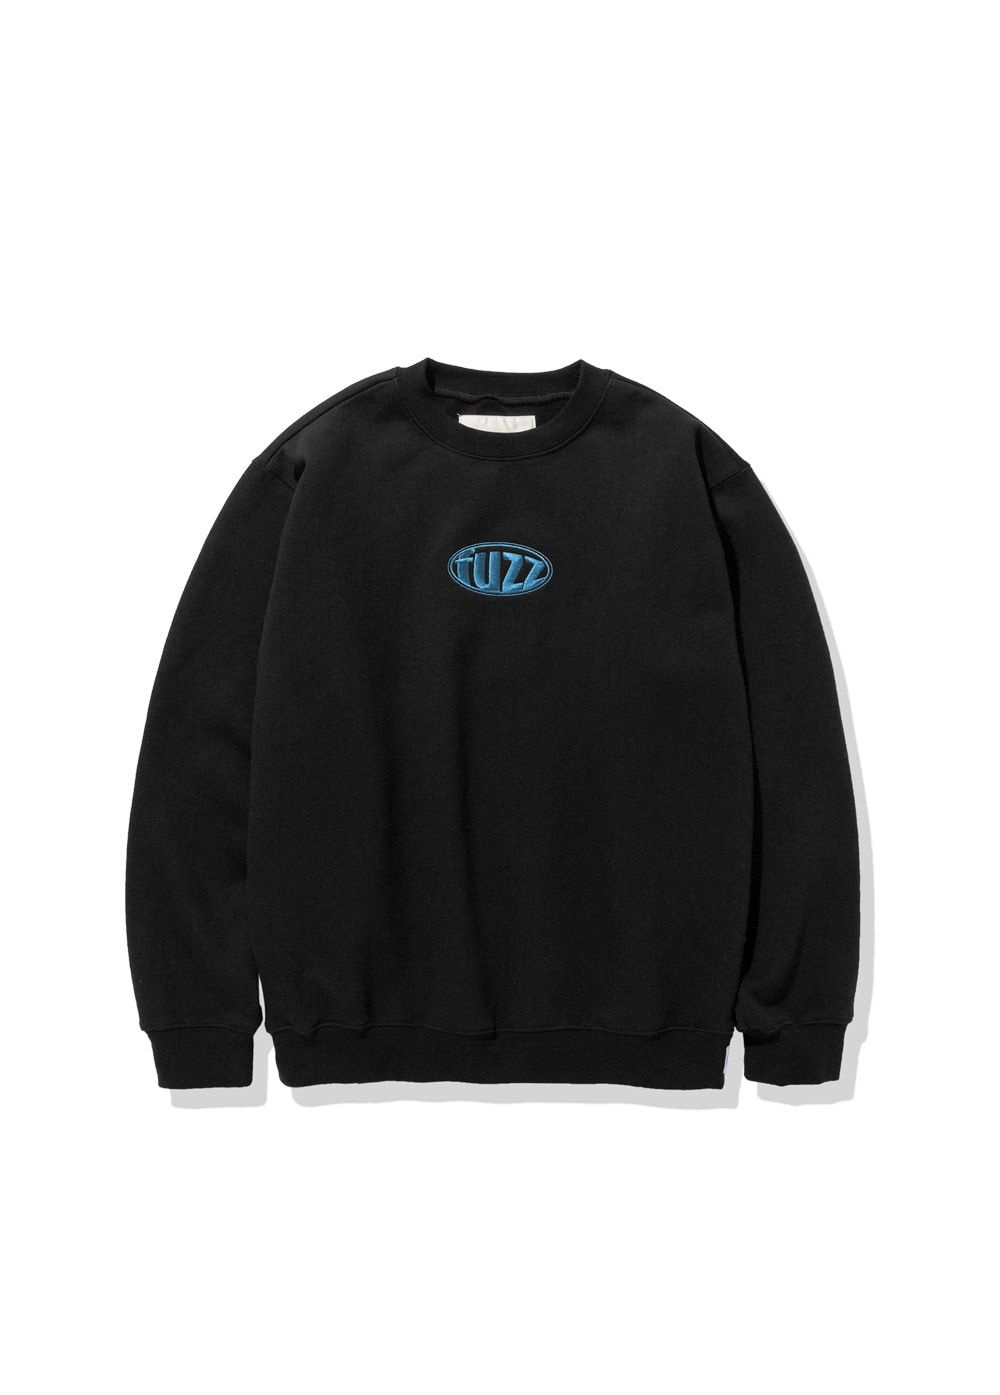 FUZZ CIRCLE LOGO SWEATSHIRT black